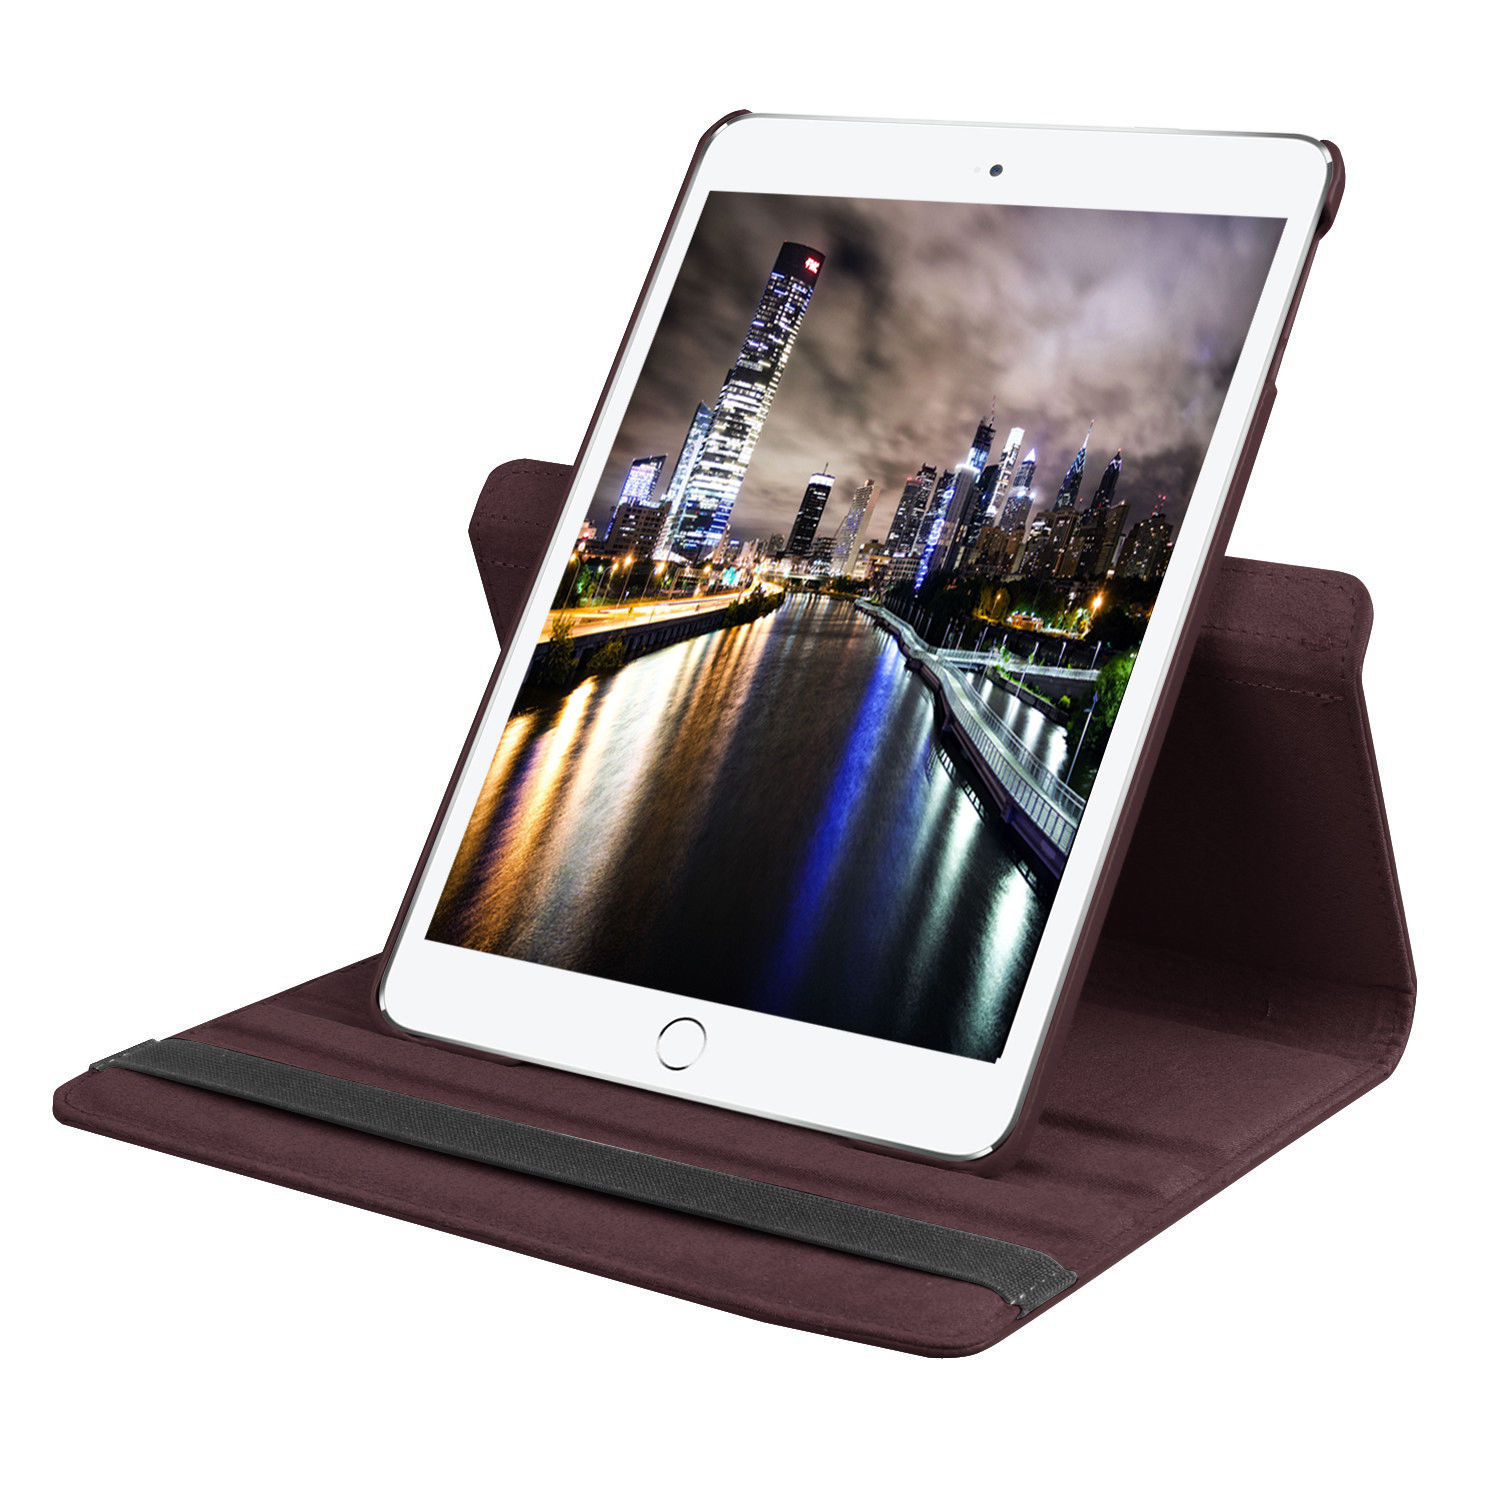 Custodia-per-Apple-iPad-Pro-2017-iPad-Air-3-10-5-Smart-Cover-Case-Custodia-Protettiva miniatura 61